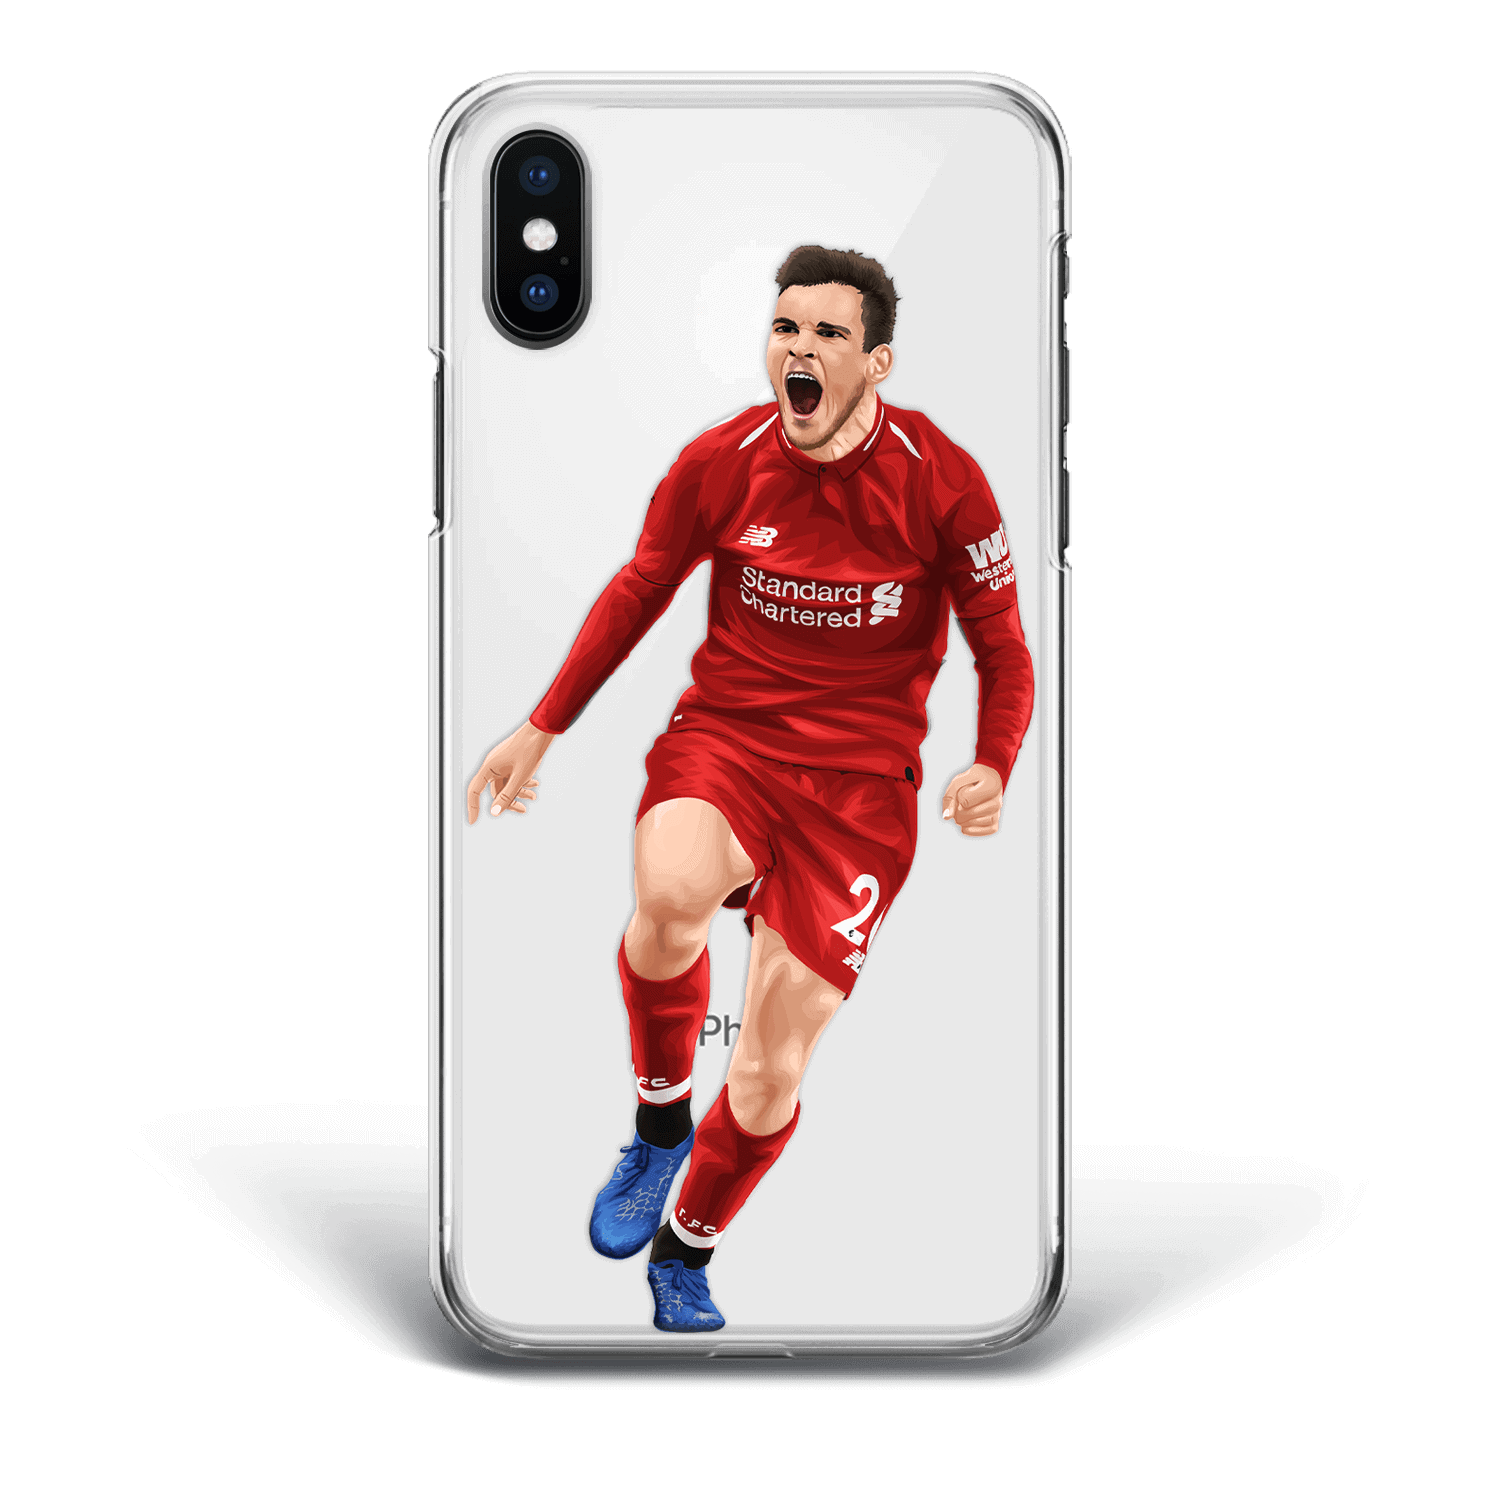 Andy Robertson phone case bollerz